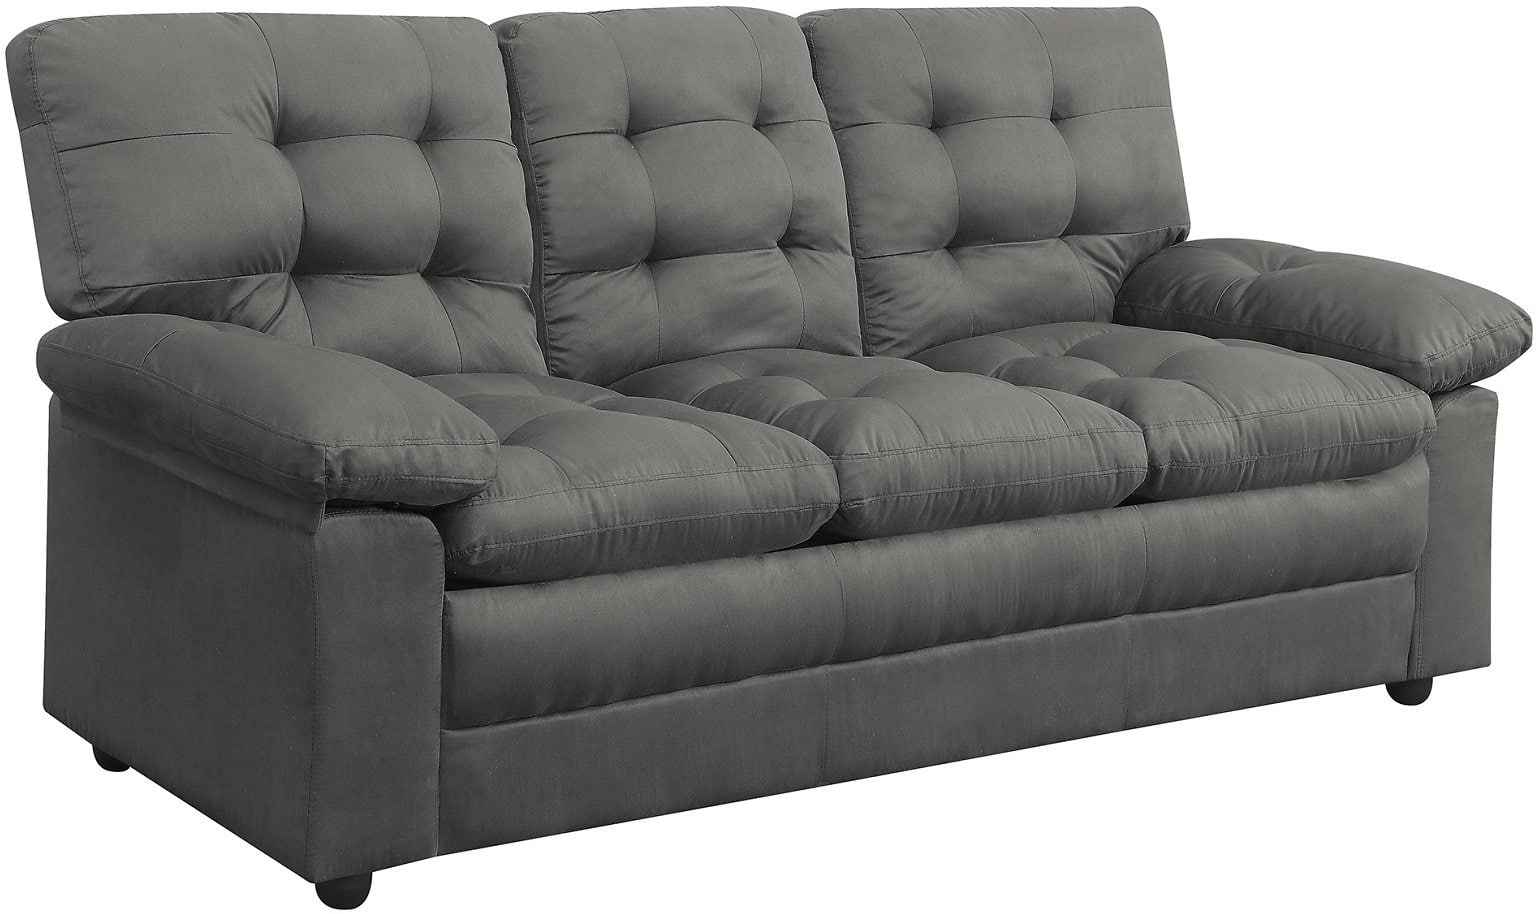 Mainstays Buchannan Sofa + Free shipping for $174.97 @walmart